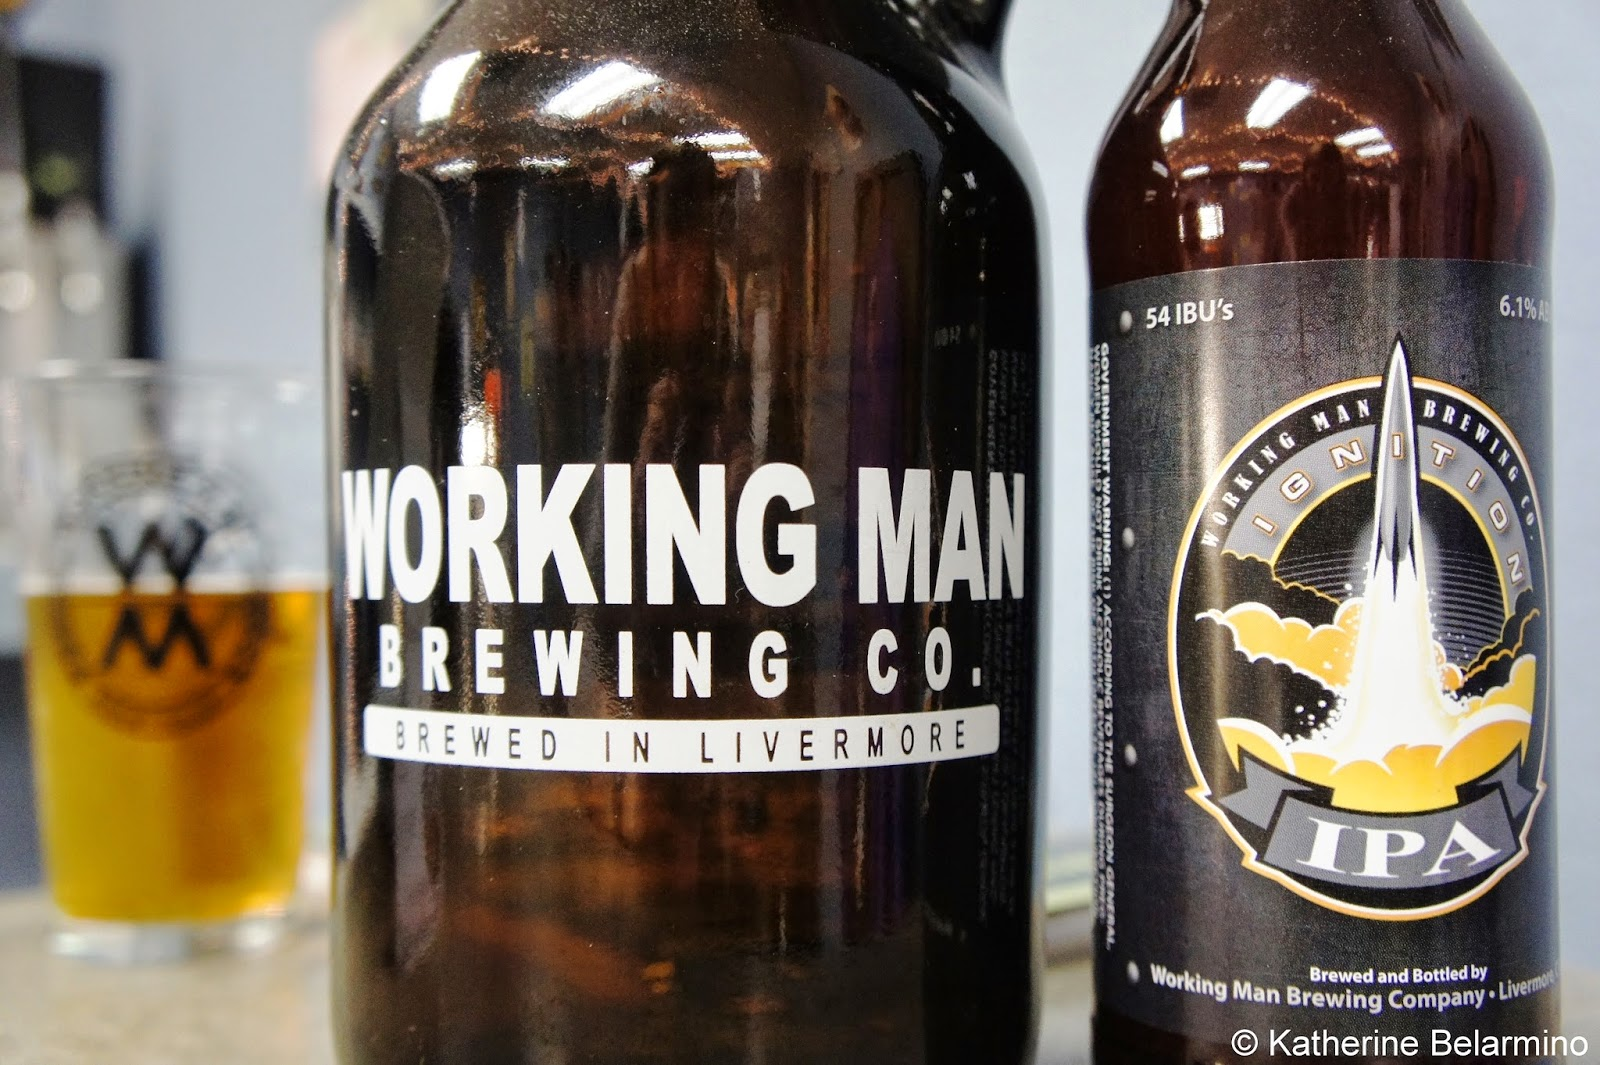 Working Man Brewing Company Livermore California Tri-Valley Beer Trail